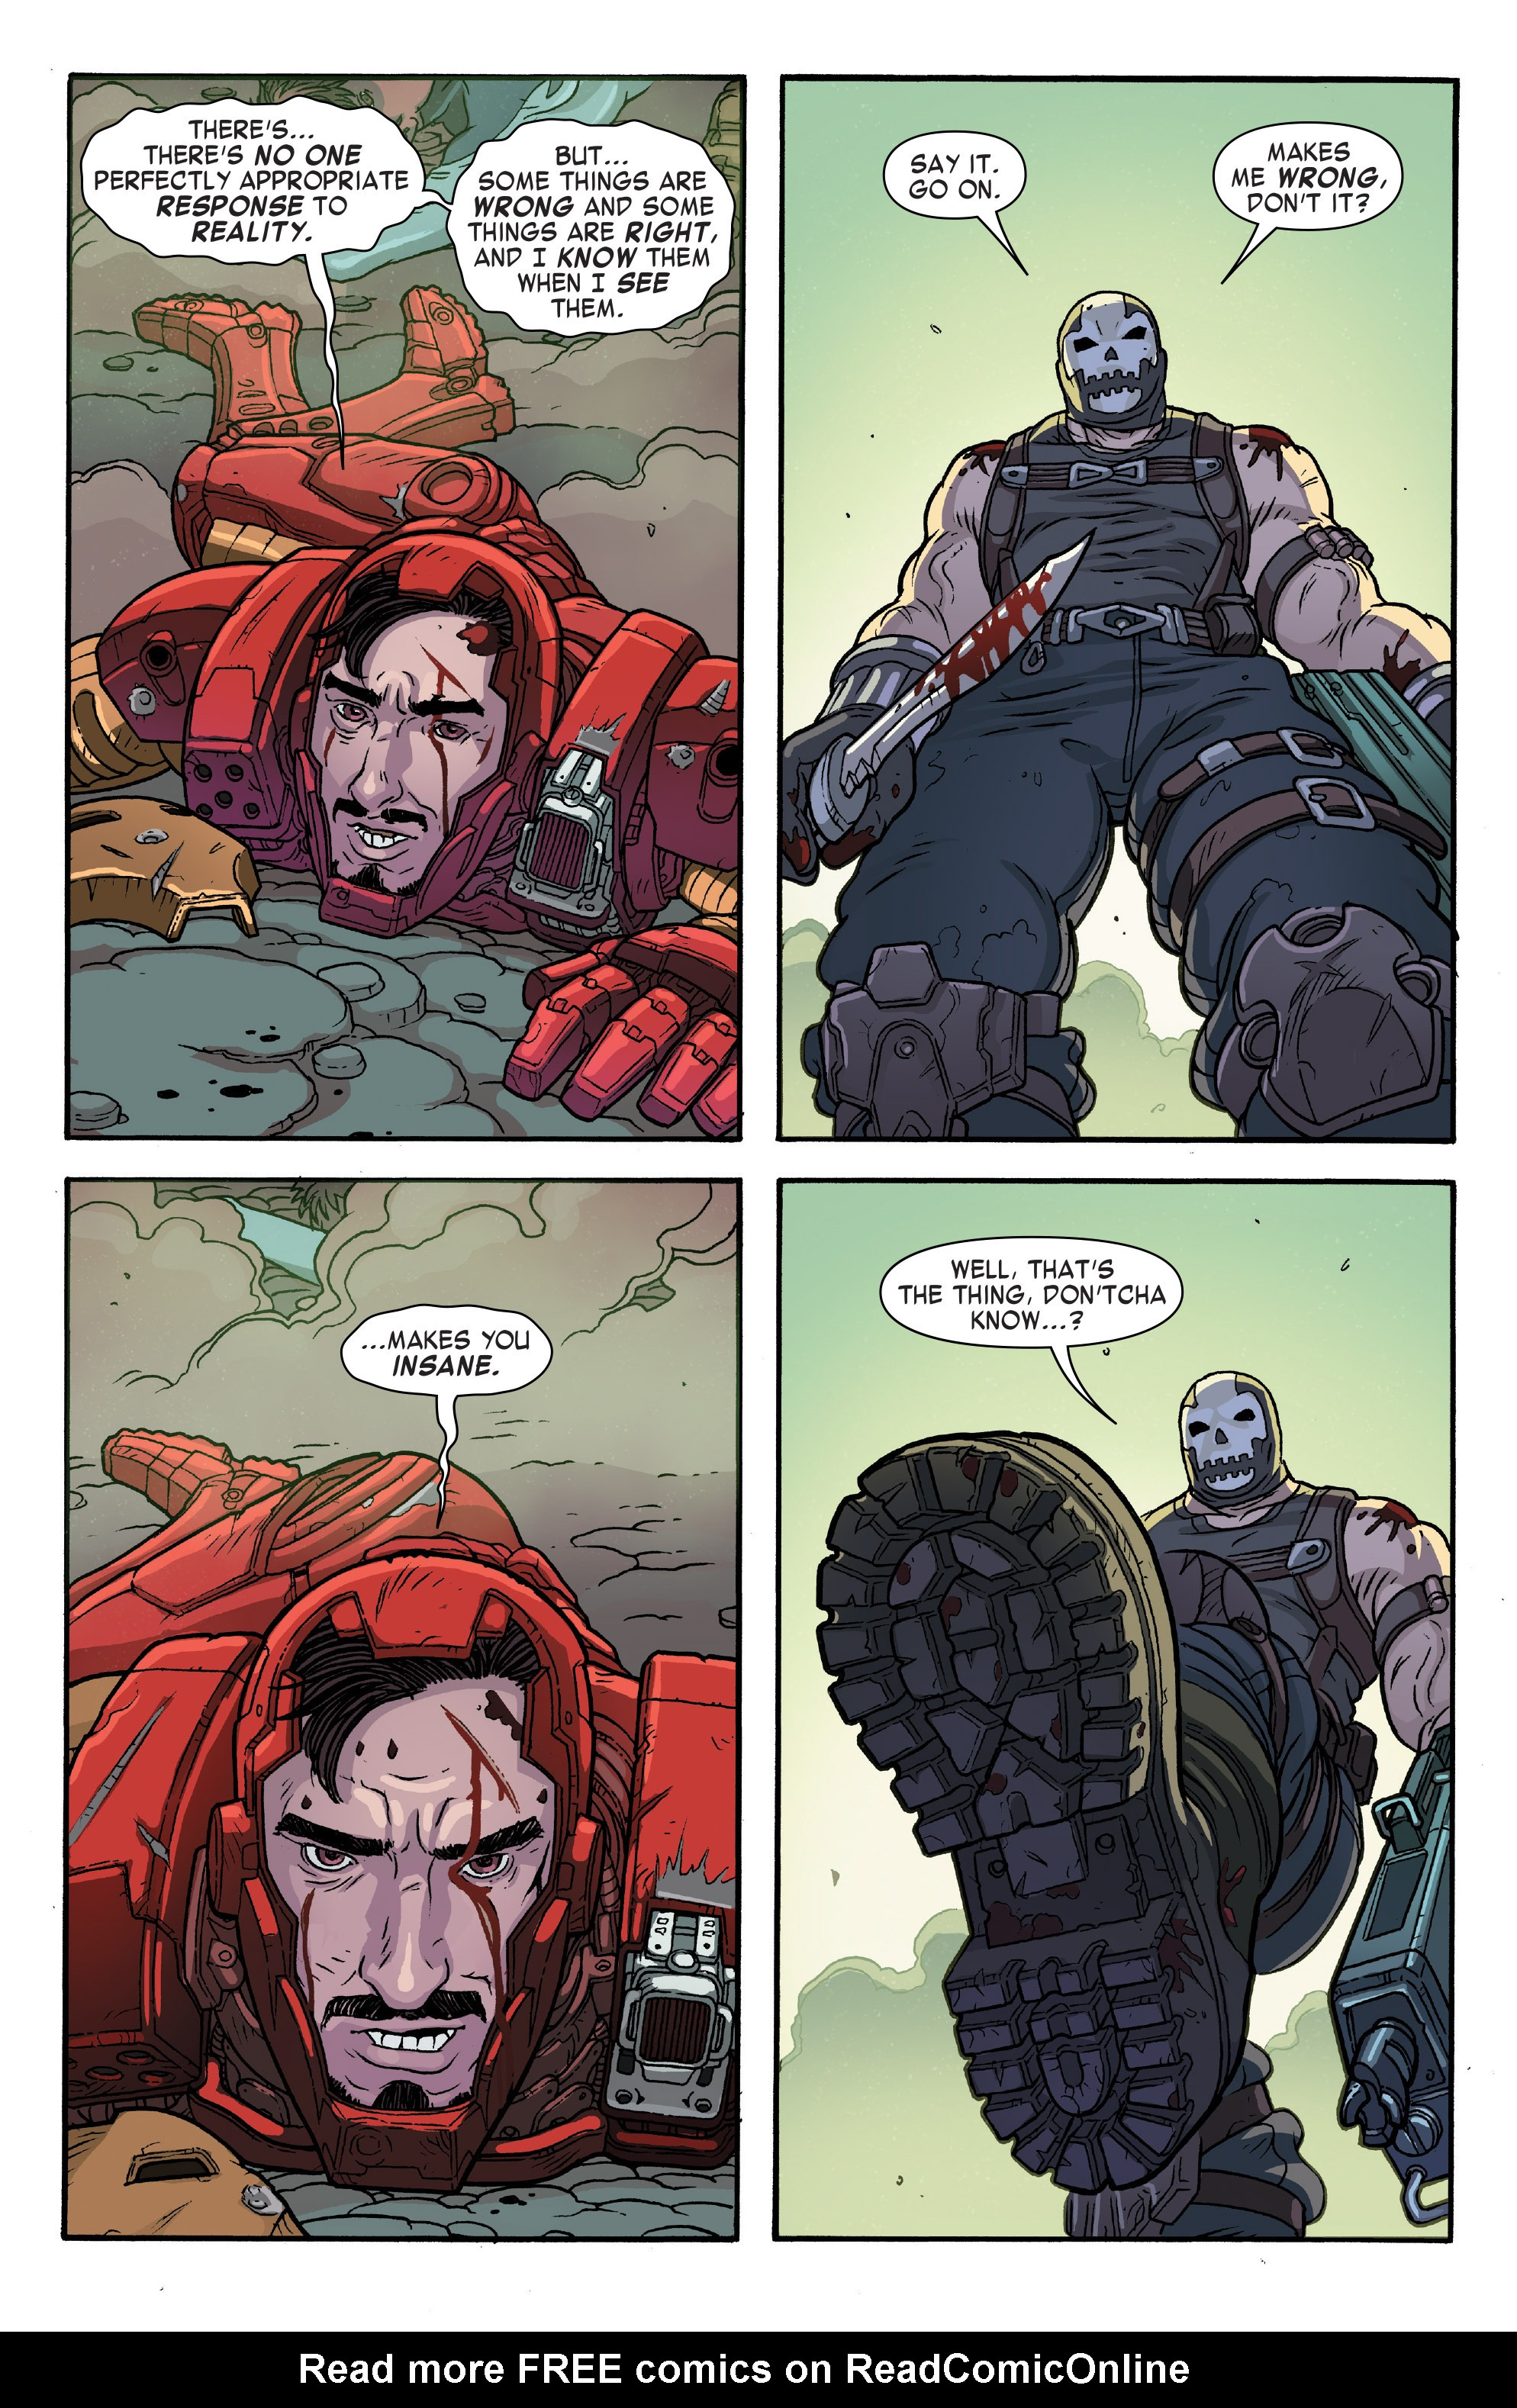 Bucky Barnes The Winter Soldier Issue 7 | Viewcomic reading